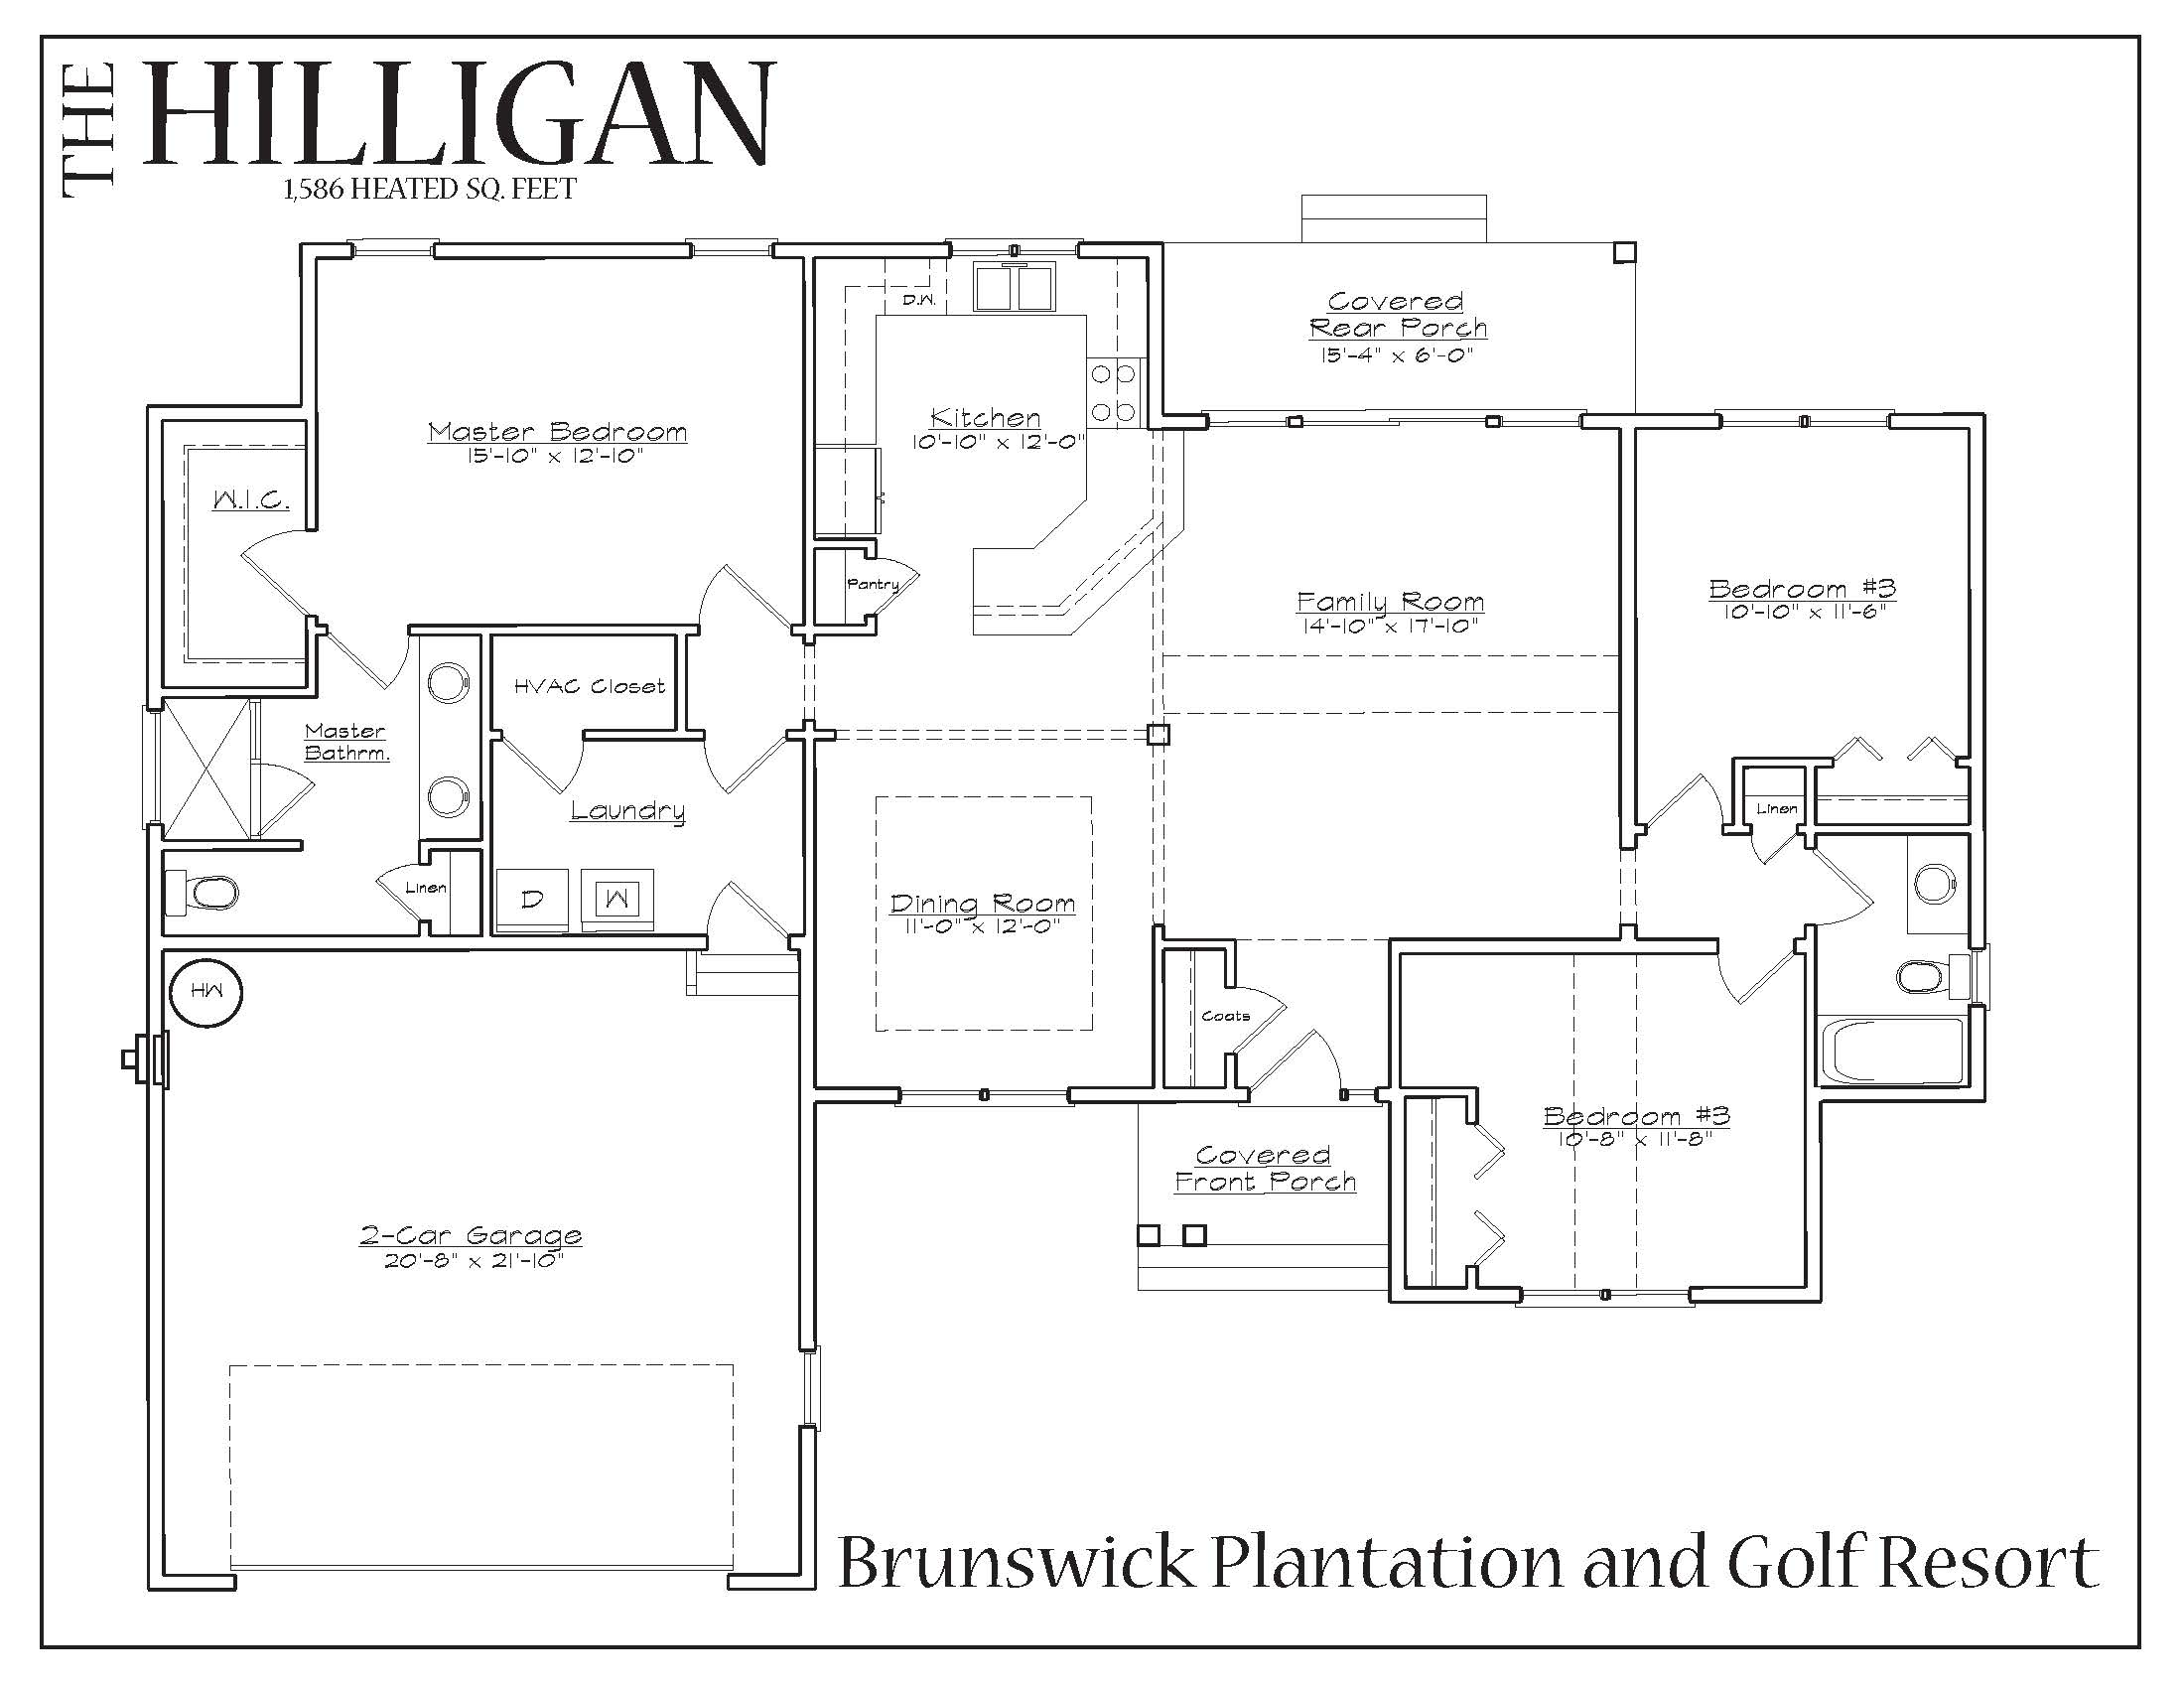 Hilligan - Floorplan 4.19.16